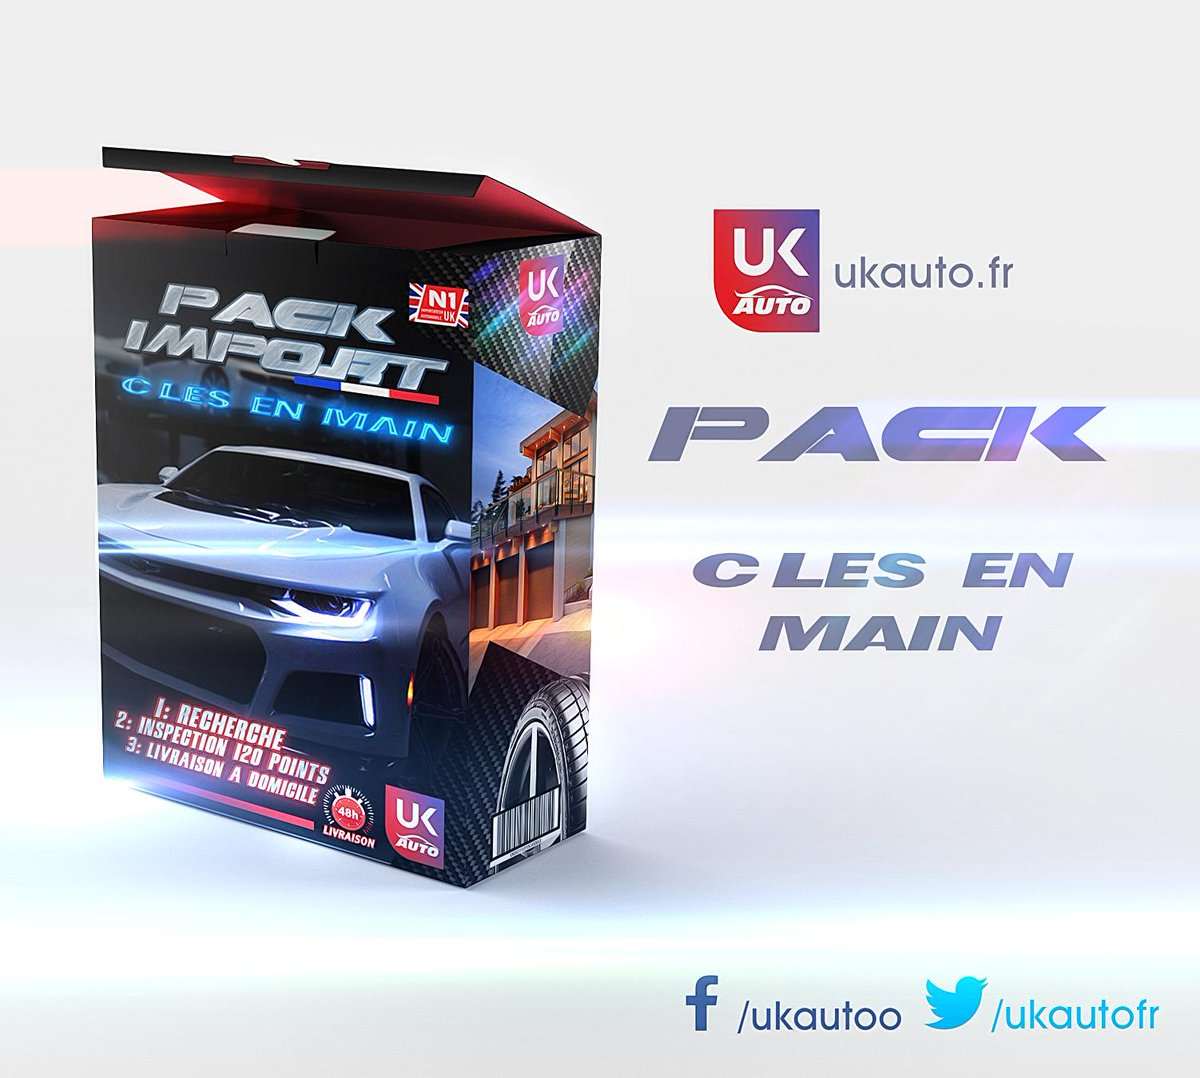 ukauto mandataire automobile angleterre importation voiture angleterre 2 - Importation Automobile depuis l'Angleterre Nos Packs